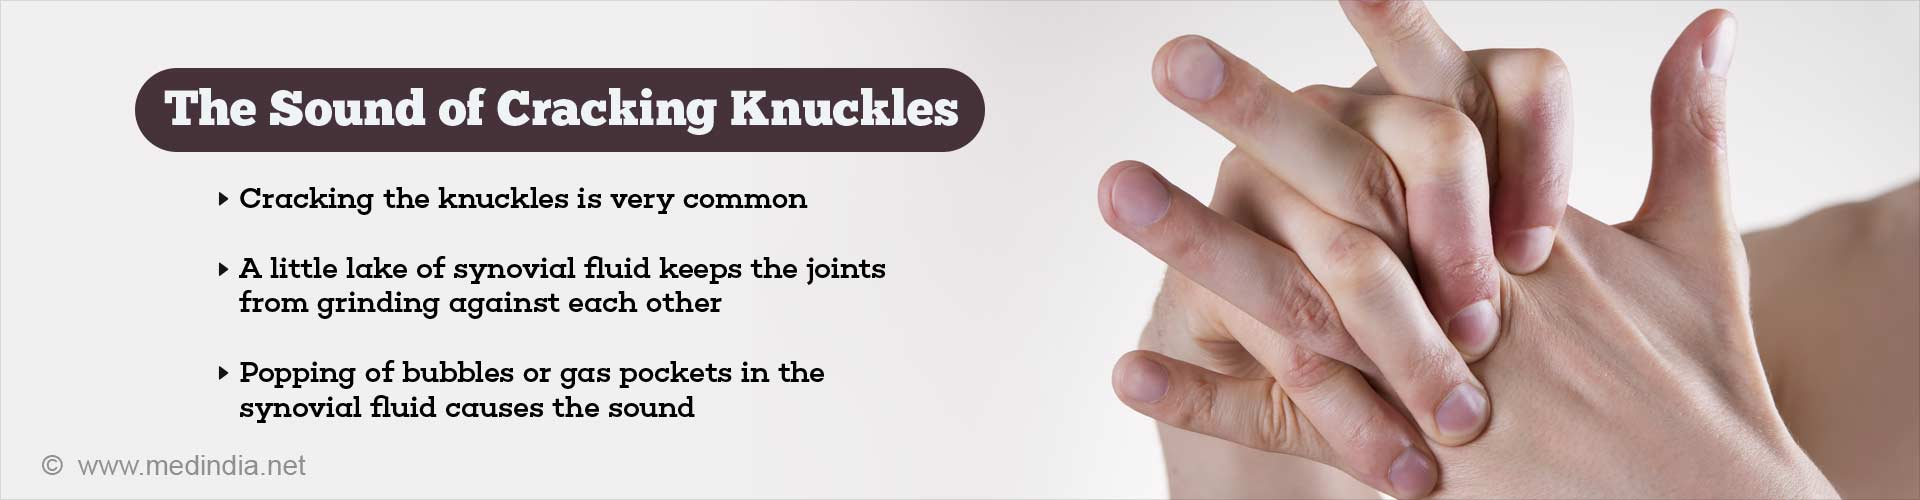 The sound of cracking knuckles